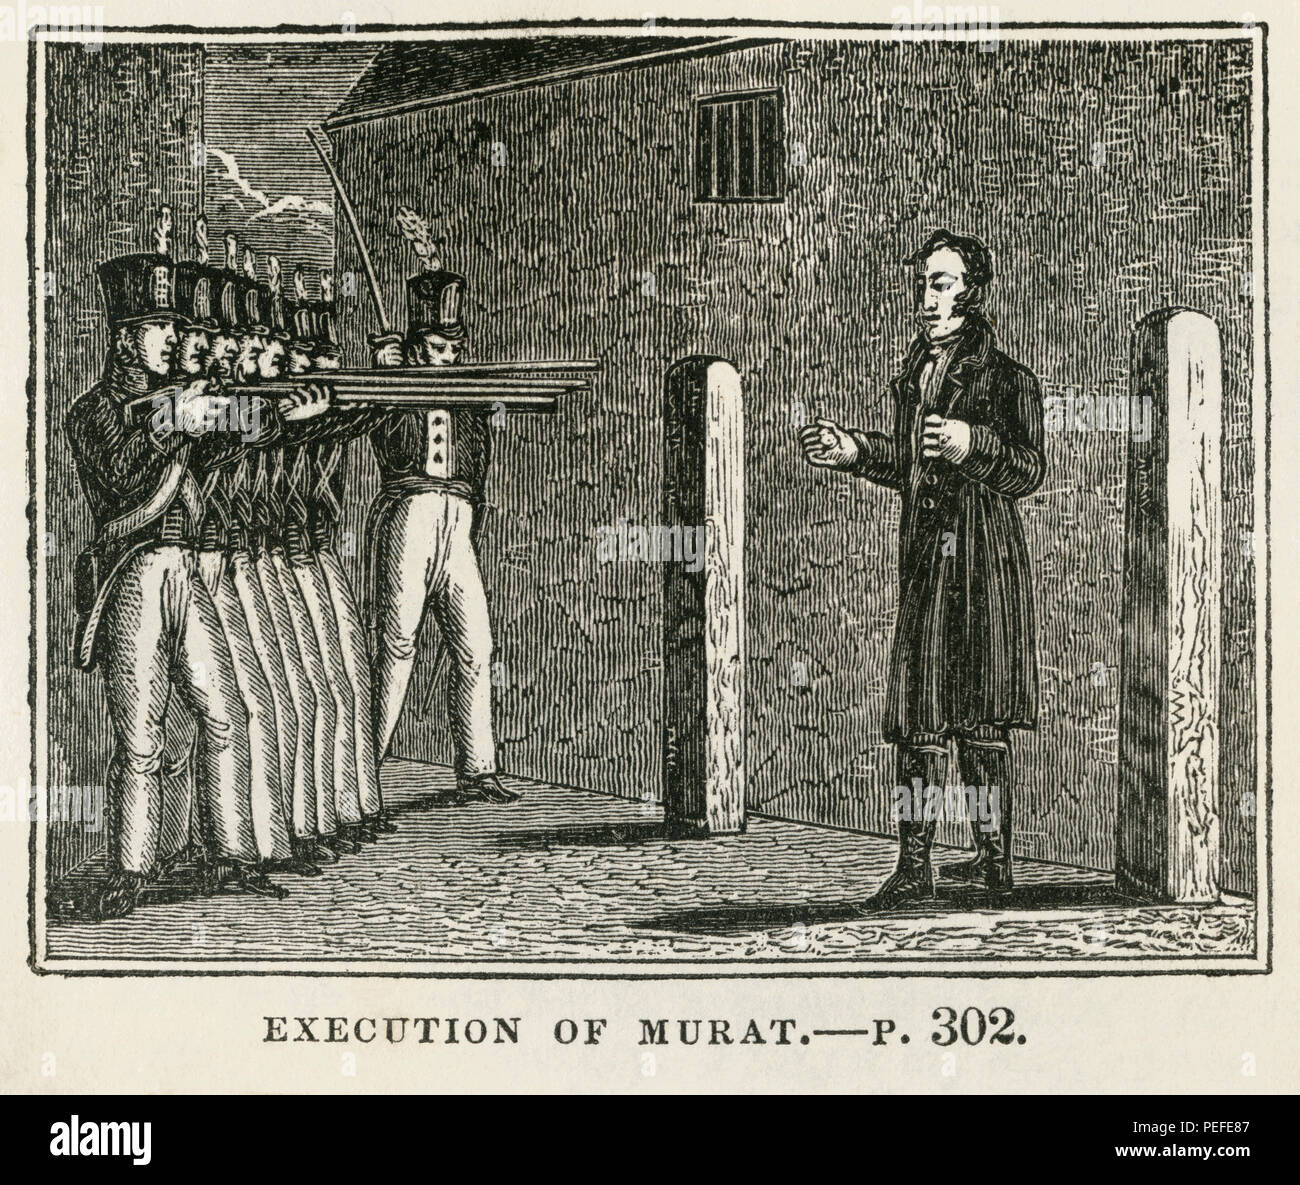 Execution of Murat, Illustration from the Book, Historical Cabinet, L.H. Young Publisher, New Haven, 1834 - Stock Image